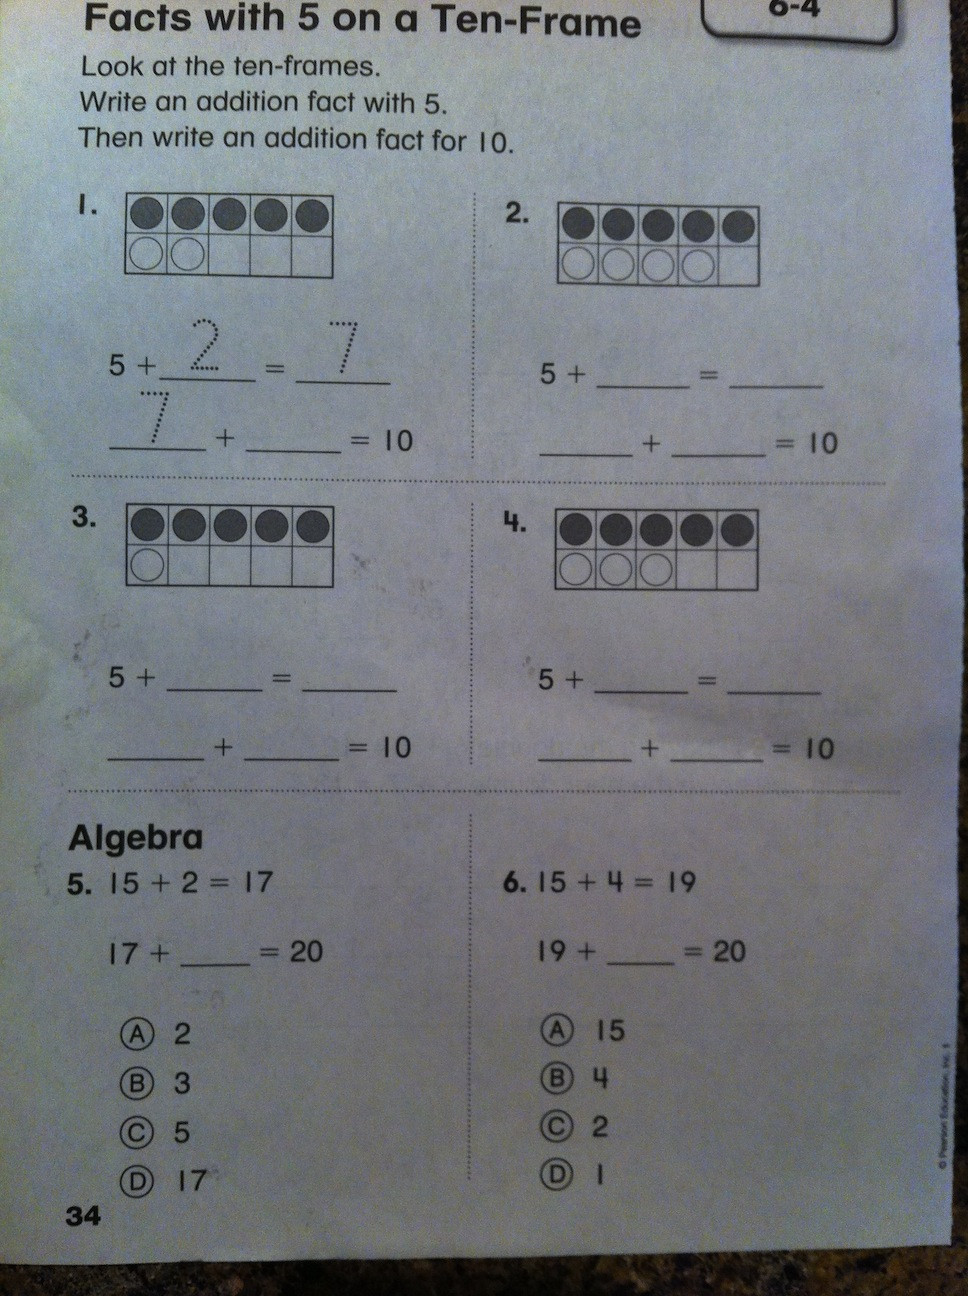 Envision Math 4th Grade Worksheets Mathematical Practices Free Math Worksheets for Grade 1